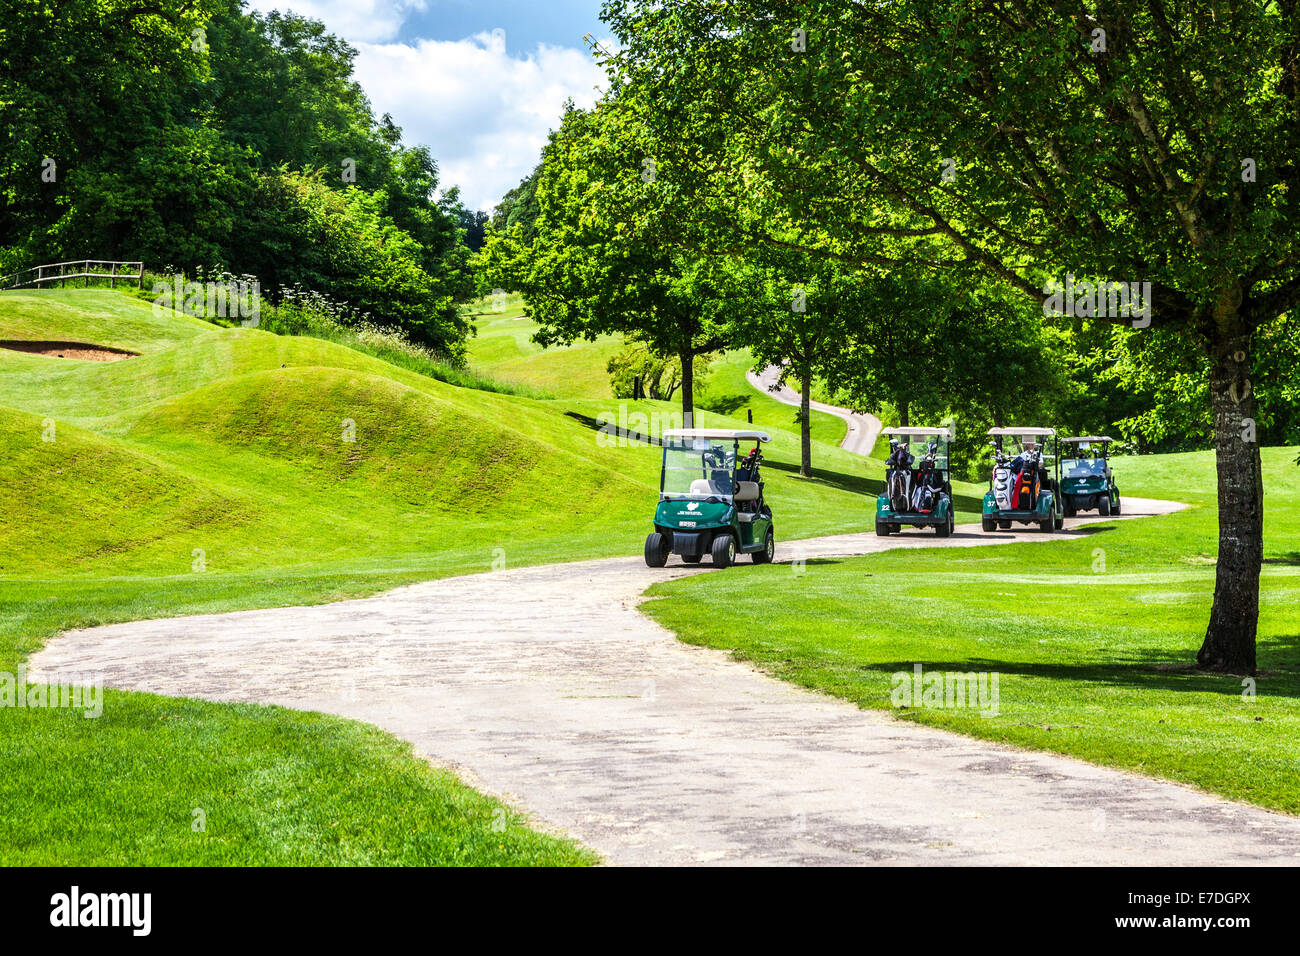 Four electric golf buggies by some bunkers on a golf course. - Stock Image